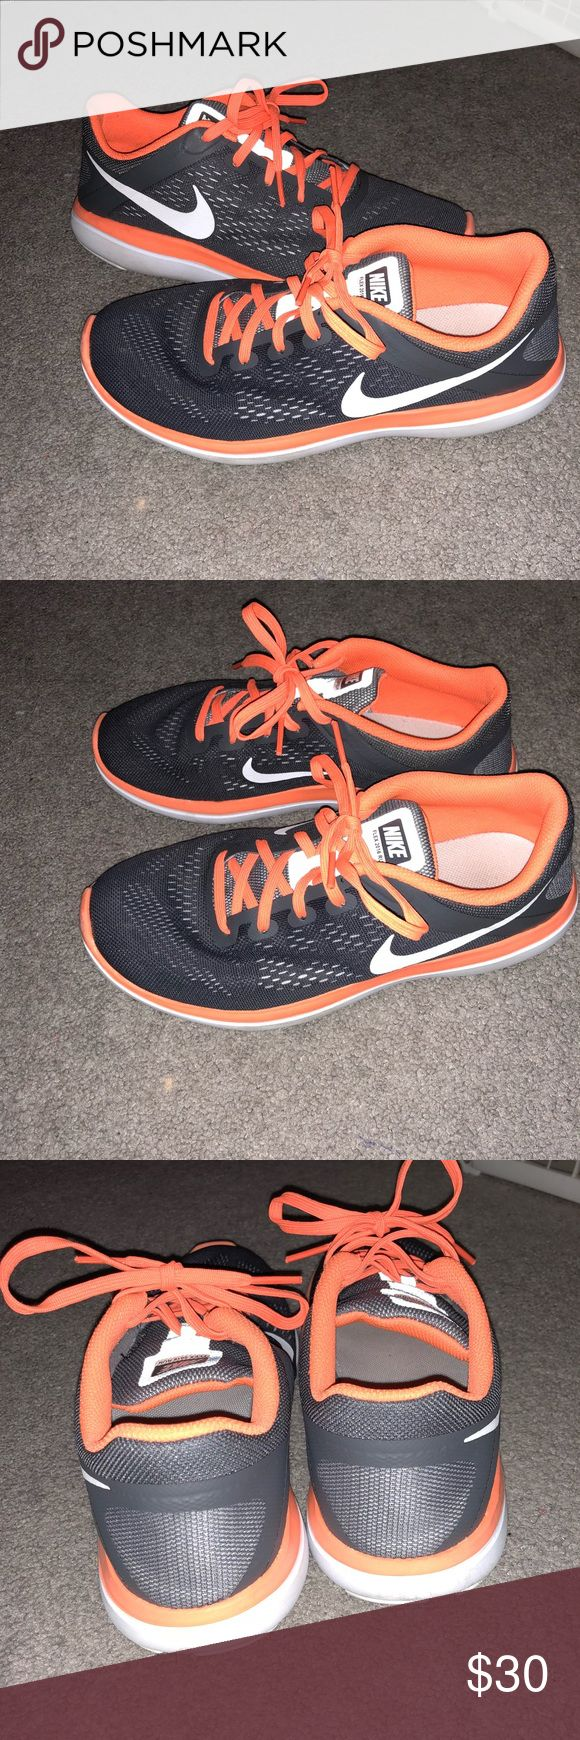 Nike Sneakers Orange neon Nike Flex 2016 run sneakers.  Worn a few times.  Odor free!  Super comfortable and cute!!  Size US 6.5 Y Make an offer! Nike Shoes Sneakers